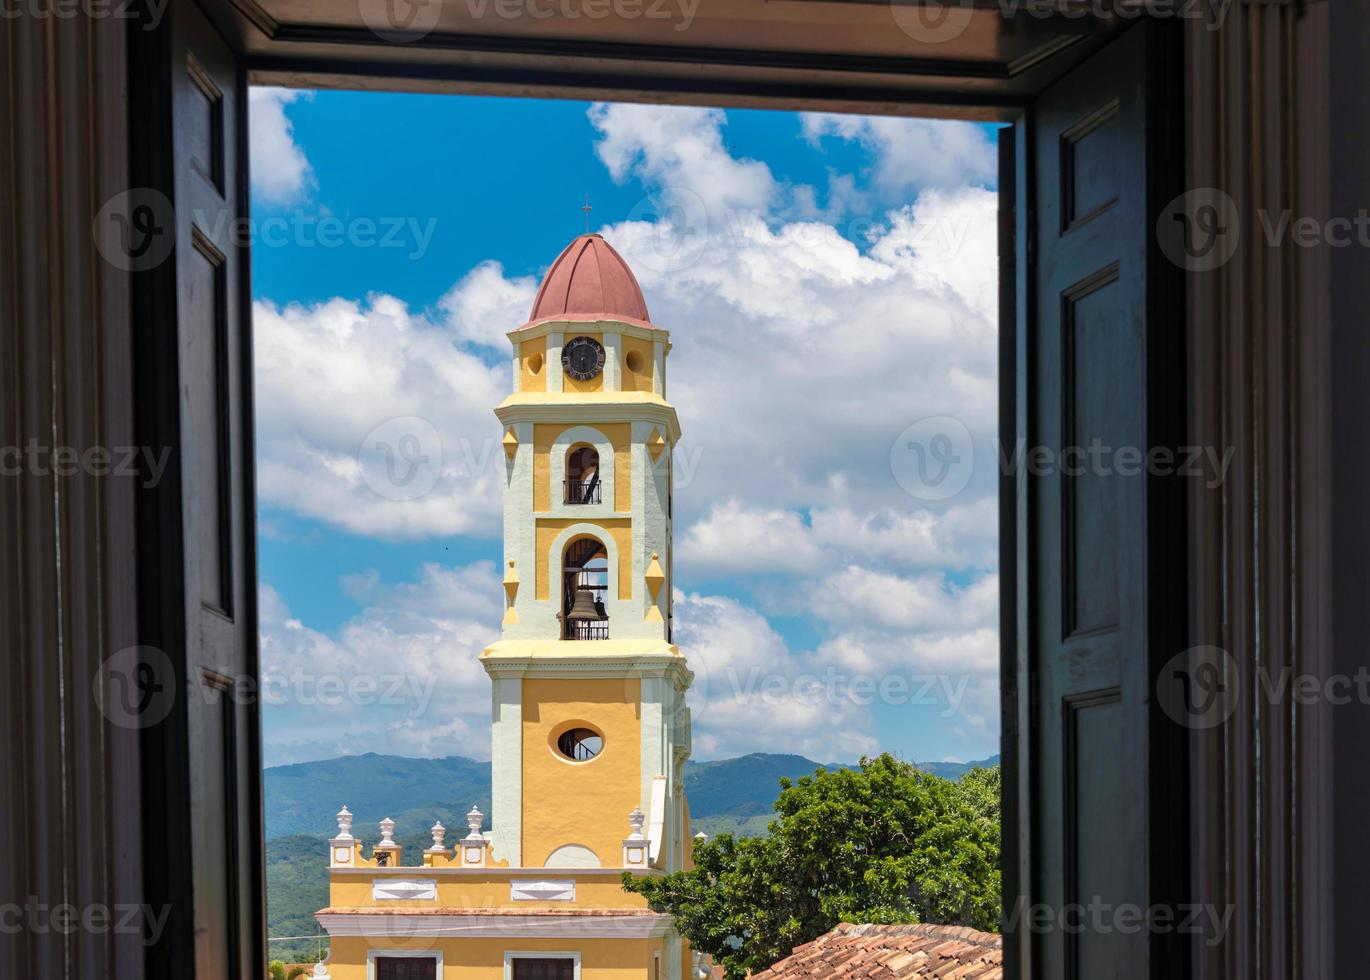 Cuba Tourism: Trinidad Monastery in Cloudy Blue Sky photo